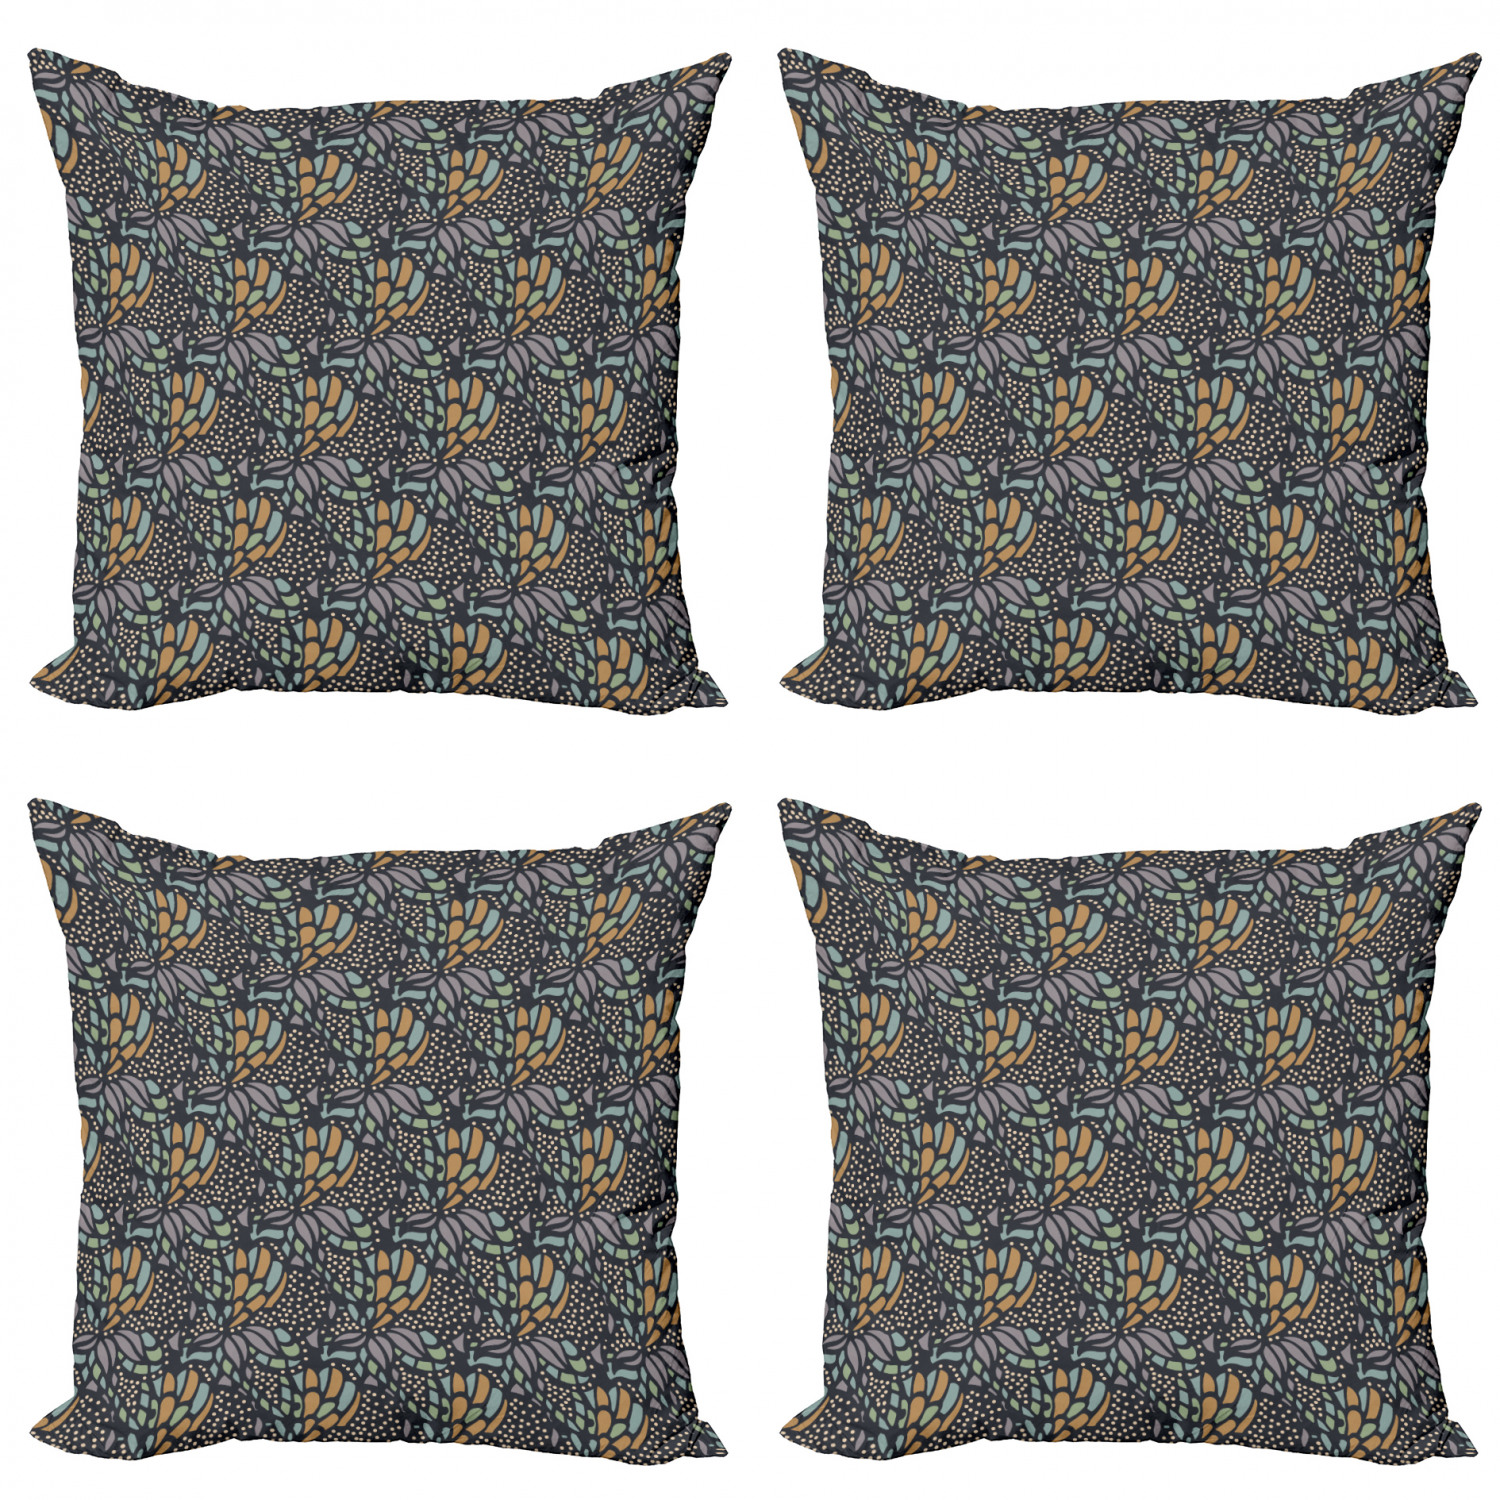 Abstract Throw Pillow Cushion Case Pack Of 4 Doodle Inspired Quirky Pattern With Dots And Flourish Shapes Modern Accent Double Sided Print 4 Sizes Multicolor By Ambesonne Walmart Com Walmart Com